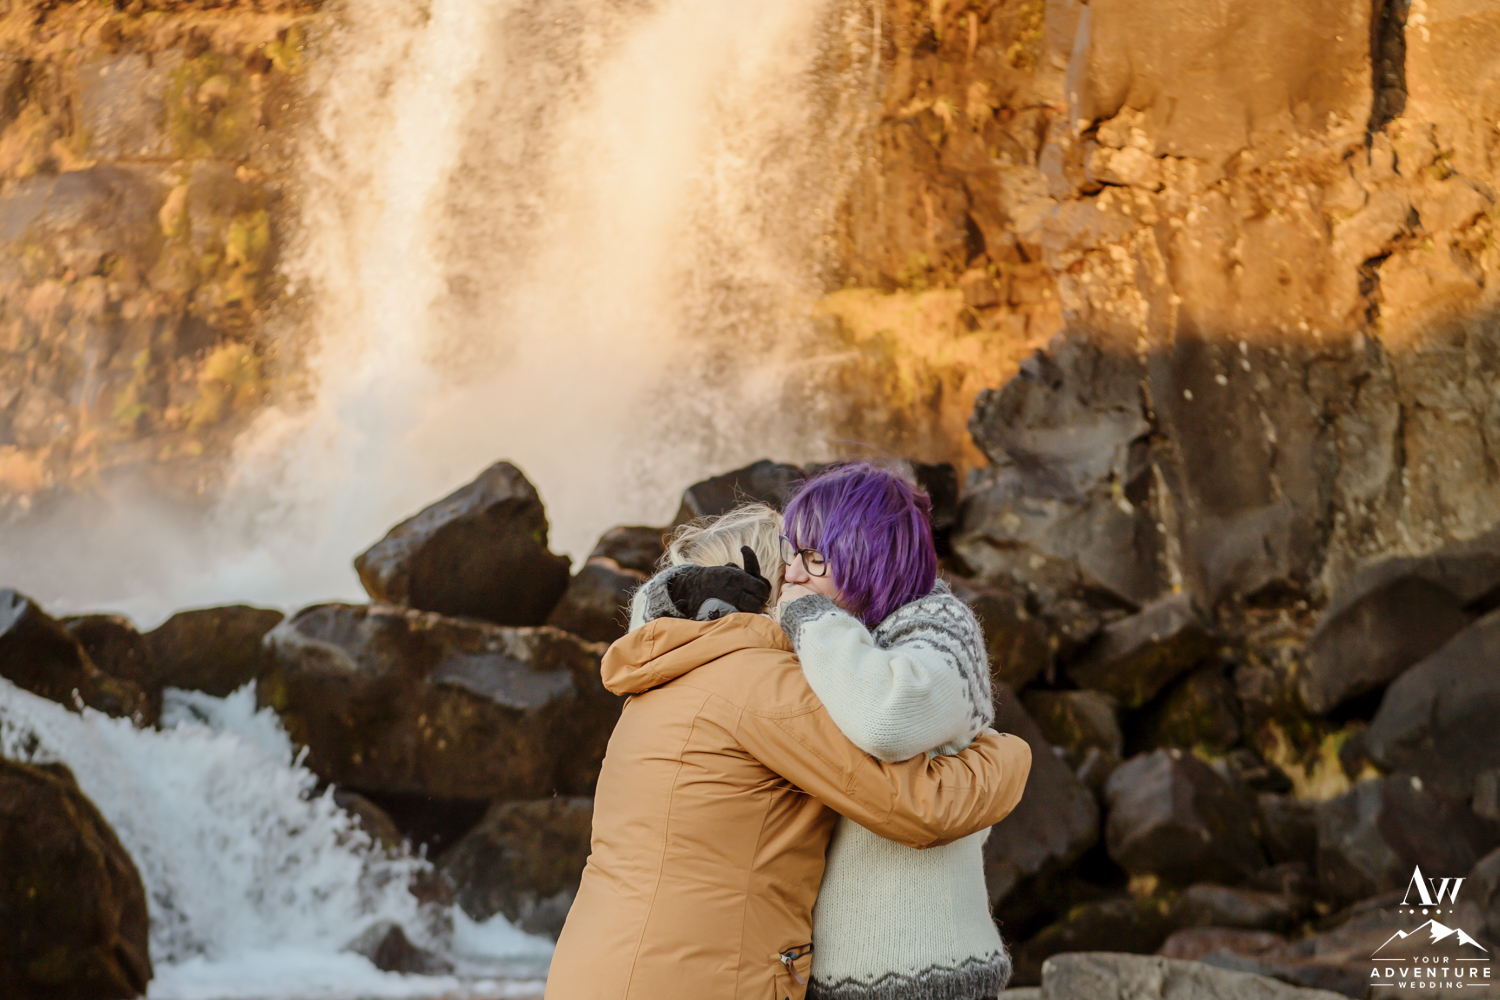 Sunrise LGBT Proposal in Iceland at Thingvellir National Park